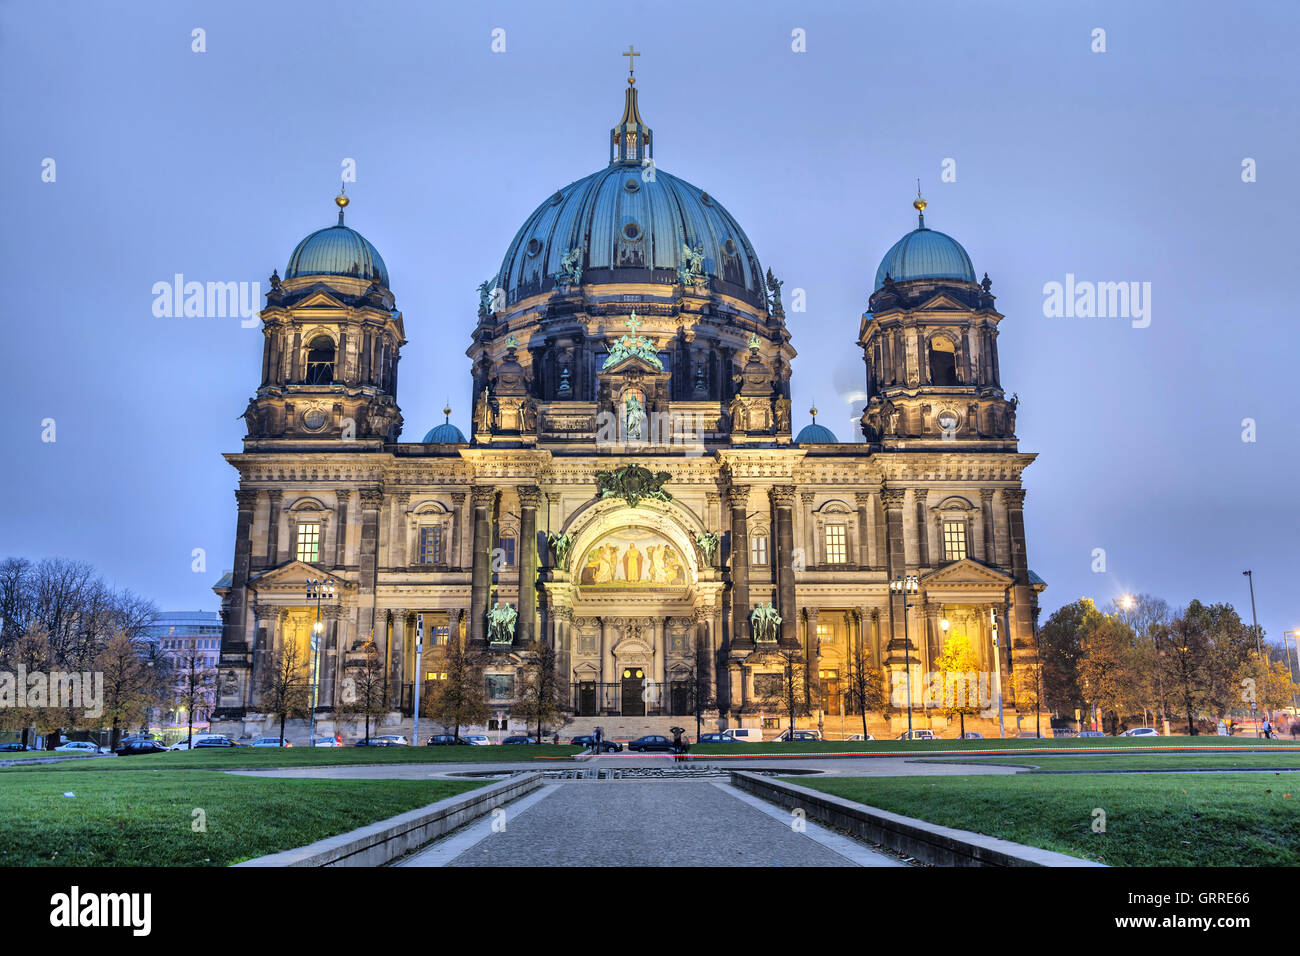 Berlin Cathedral (Berliner Dom) in evening light, Berlin, Germany - Stock Image